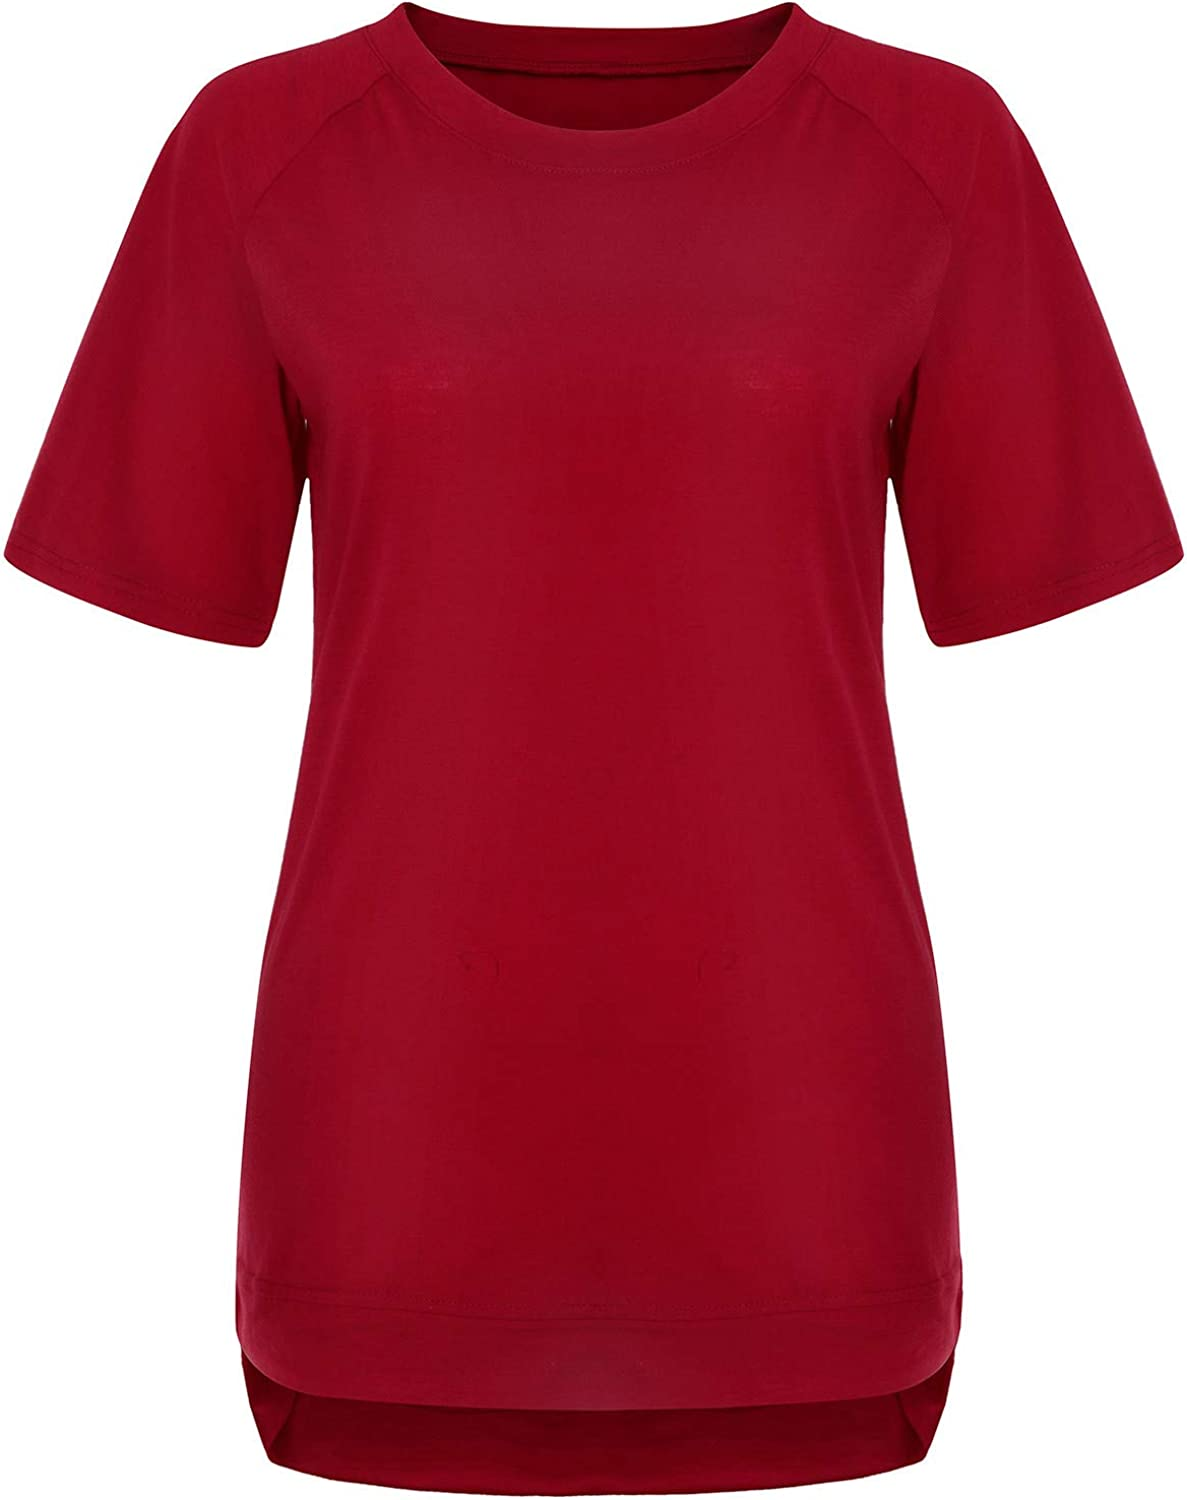 Aukbays T-Shirts for Women Women's Short Sleeve V-Neck Shirts Loose Fit Summer Casual Tees T-Shirt Basic Tops Blouses